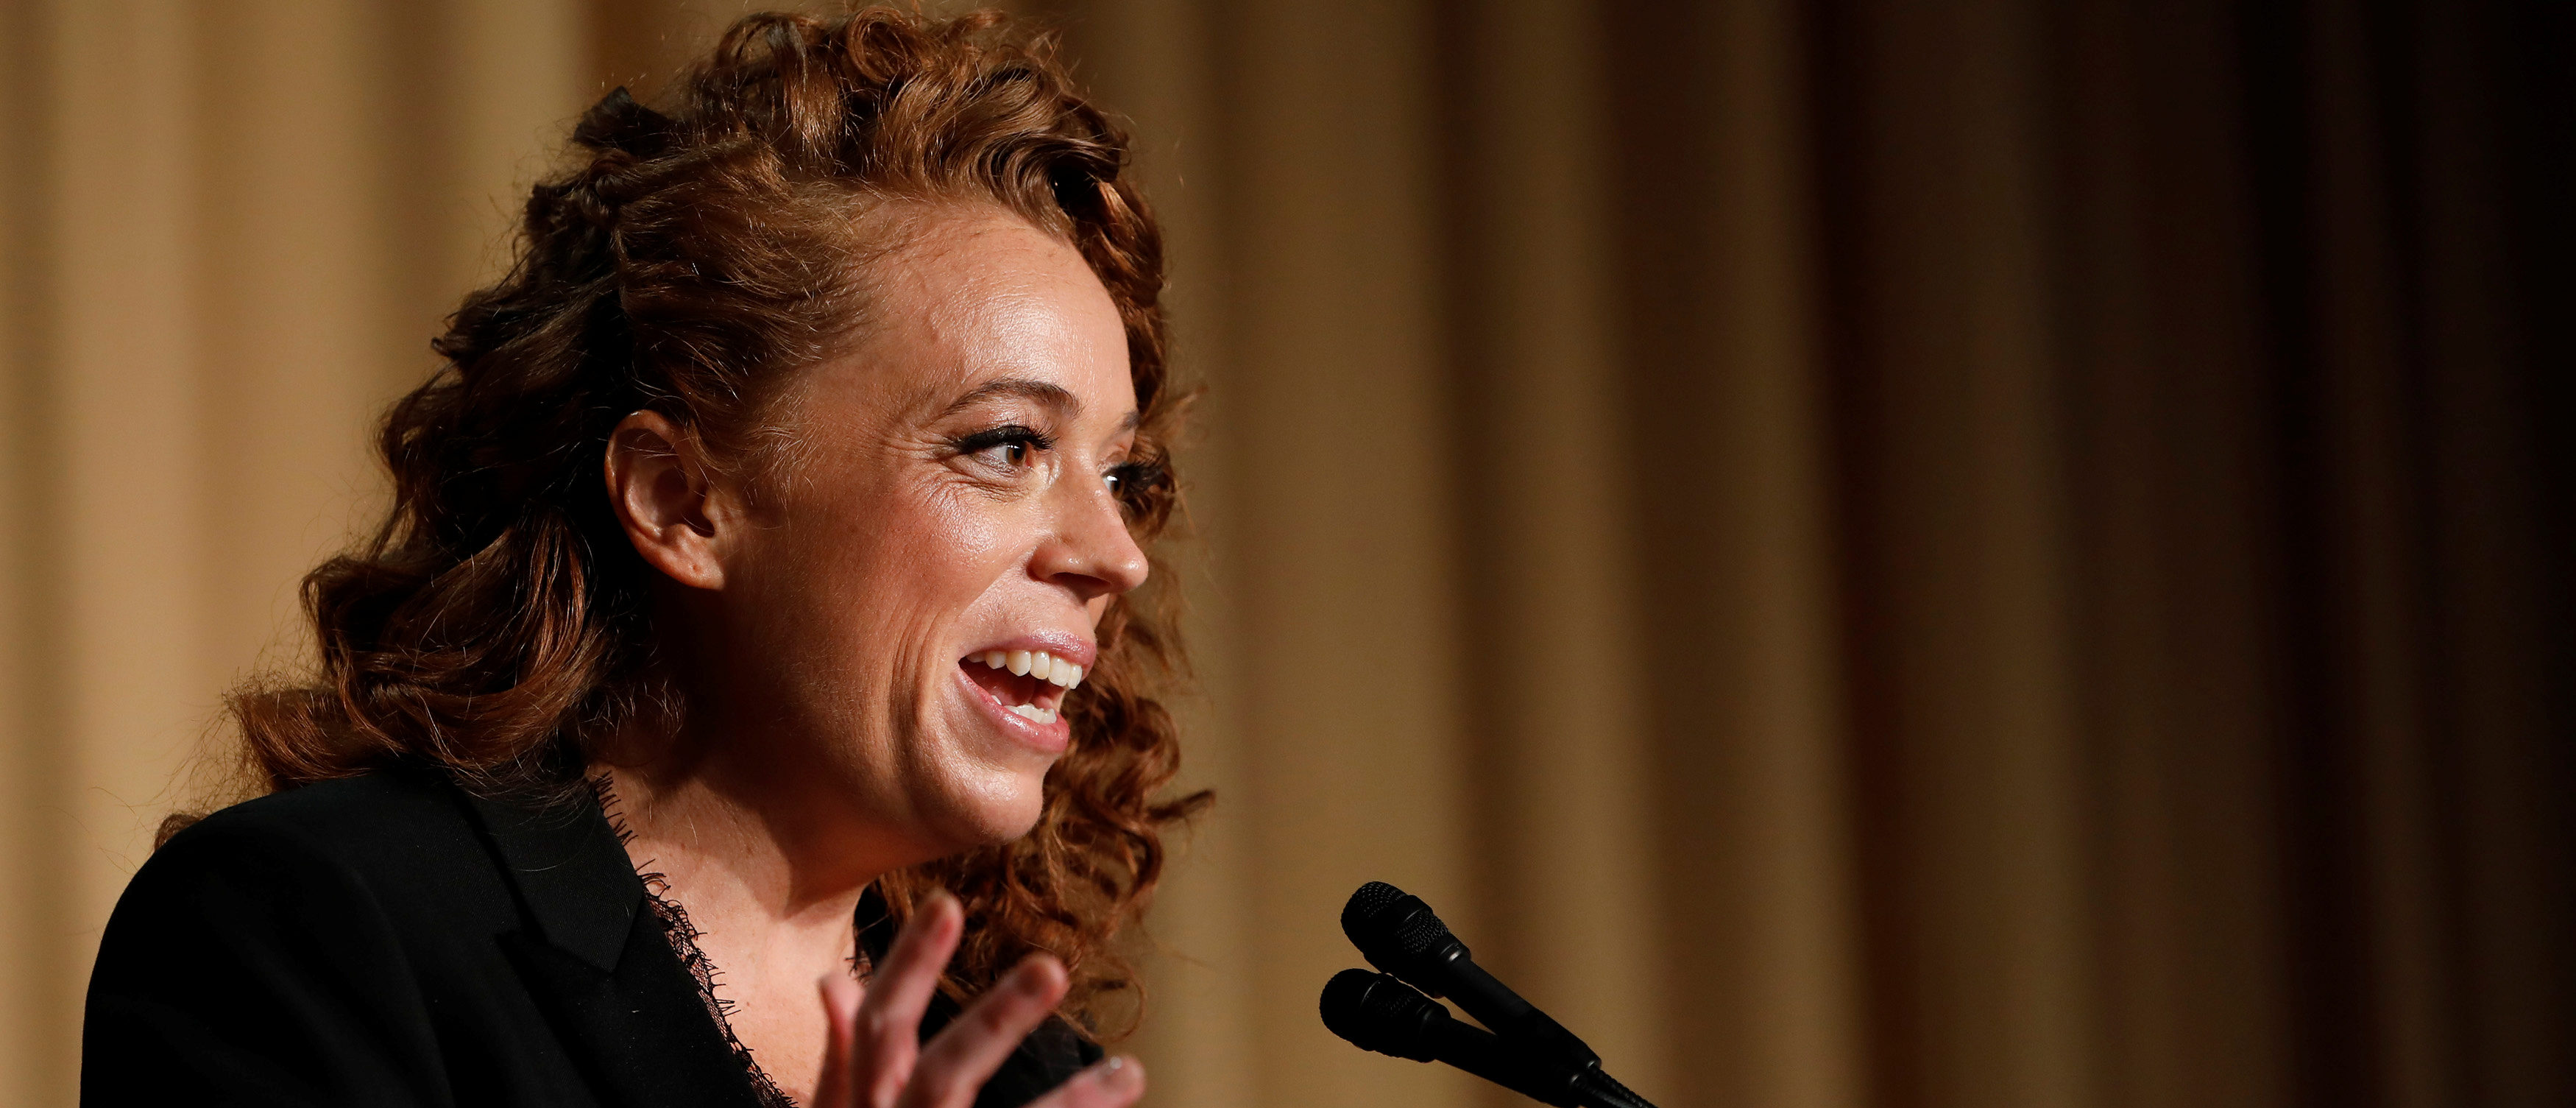 Comedian Michelle Wolf performs at the White House Correspondents' Association dinner in Washington, April 28, 2018. REUTERS/Aaron P. Bernstein